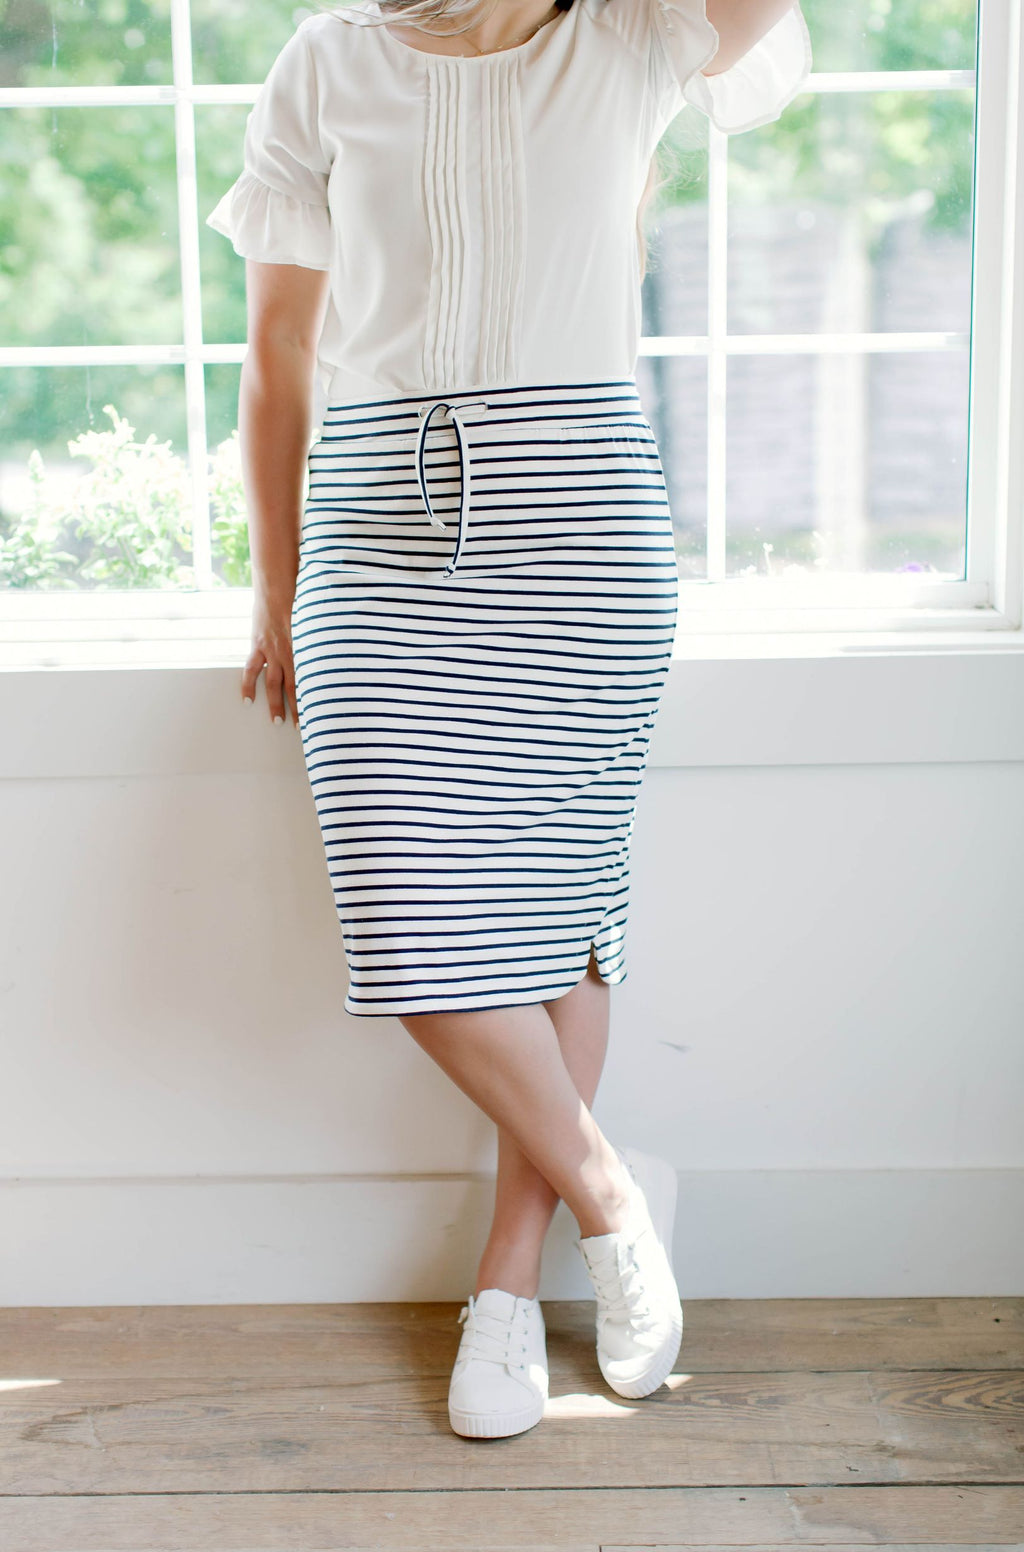 'Olivia' Skirt in Cream with Navy Stripes